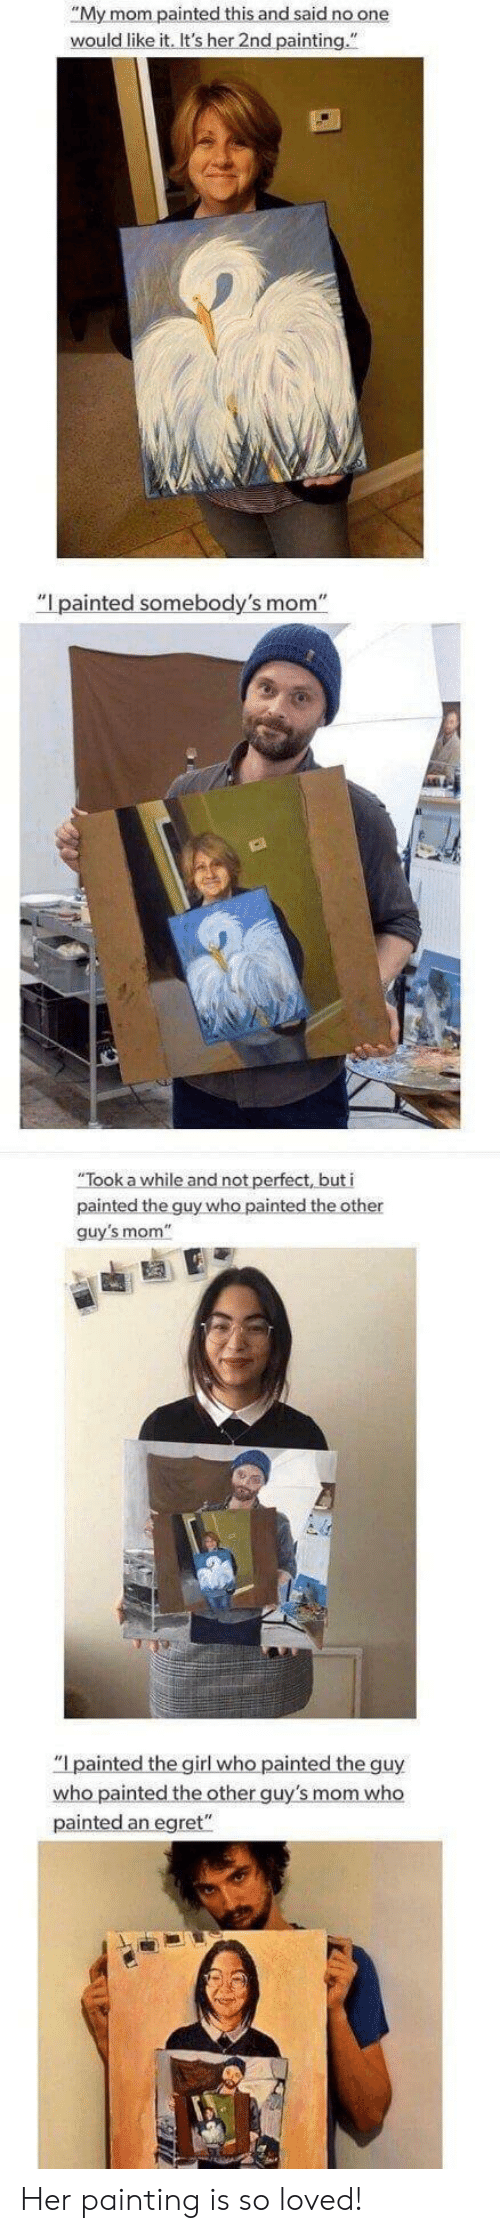 """The Other Guys, Mom, and Her: """"My mom painted this and said no one  would like it. It's her 2nd painting.""""  """"I painted somebody's mom""""  an  guy's mom  who painted the other guy's mom who  painted an egret"""" Her painting is so loved!"""